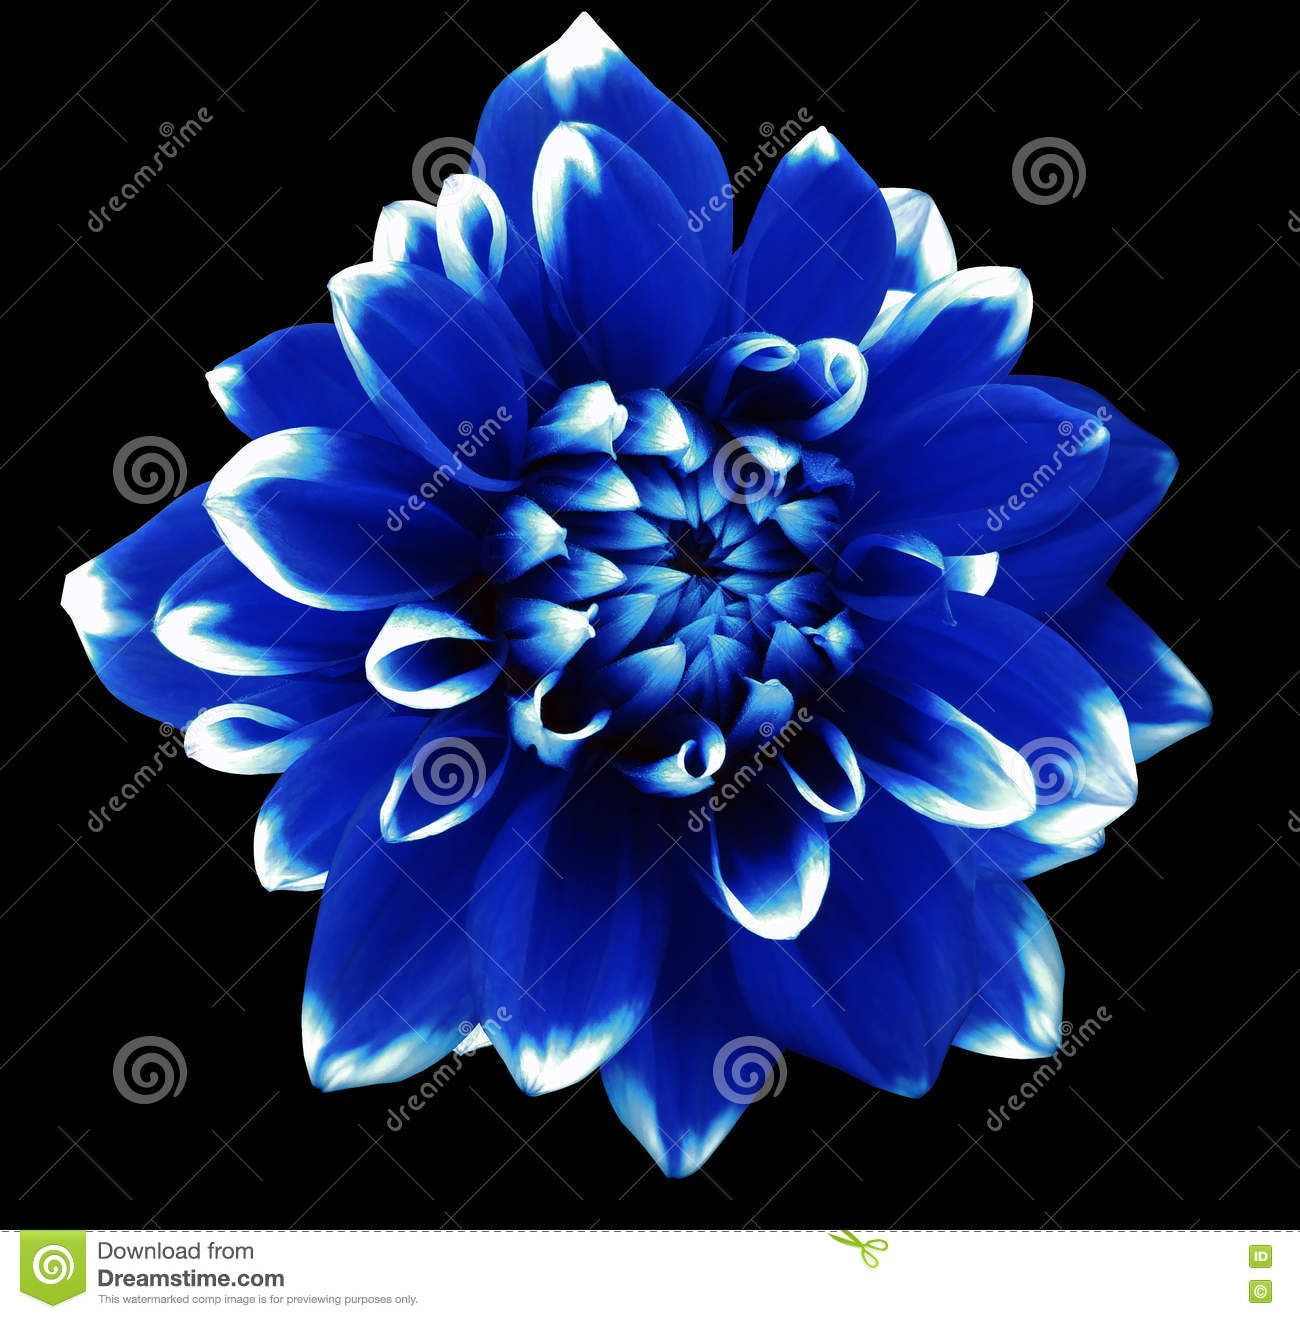 Flower Blue And White Motley Dahlia In 2020 Blue And White Flowers Dahlia Flower